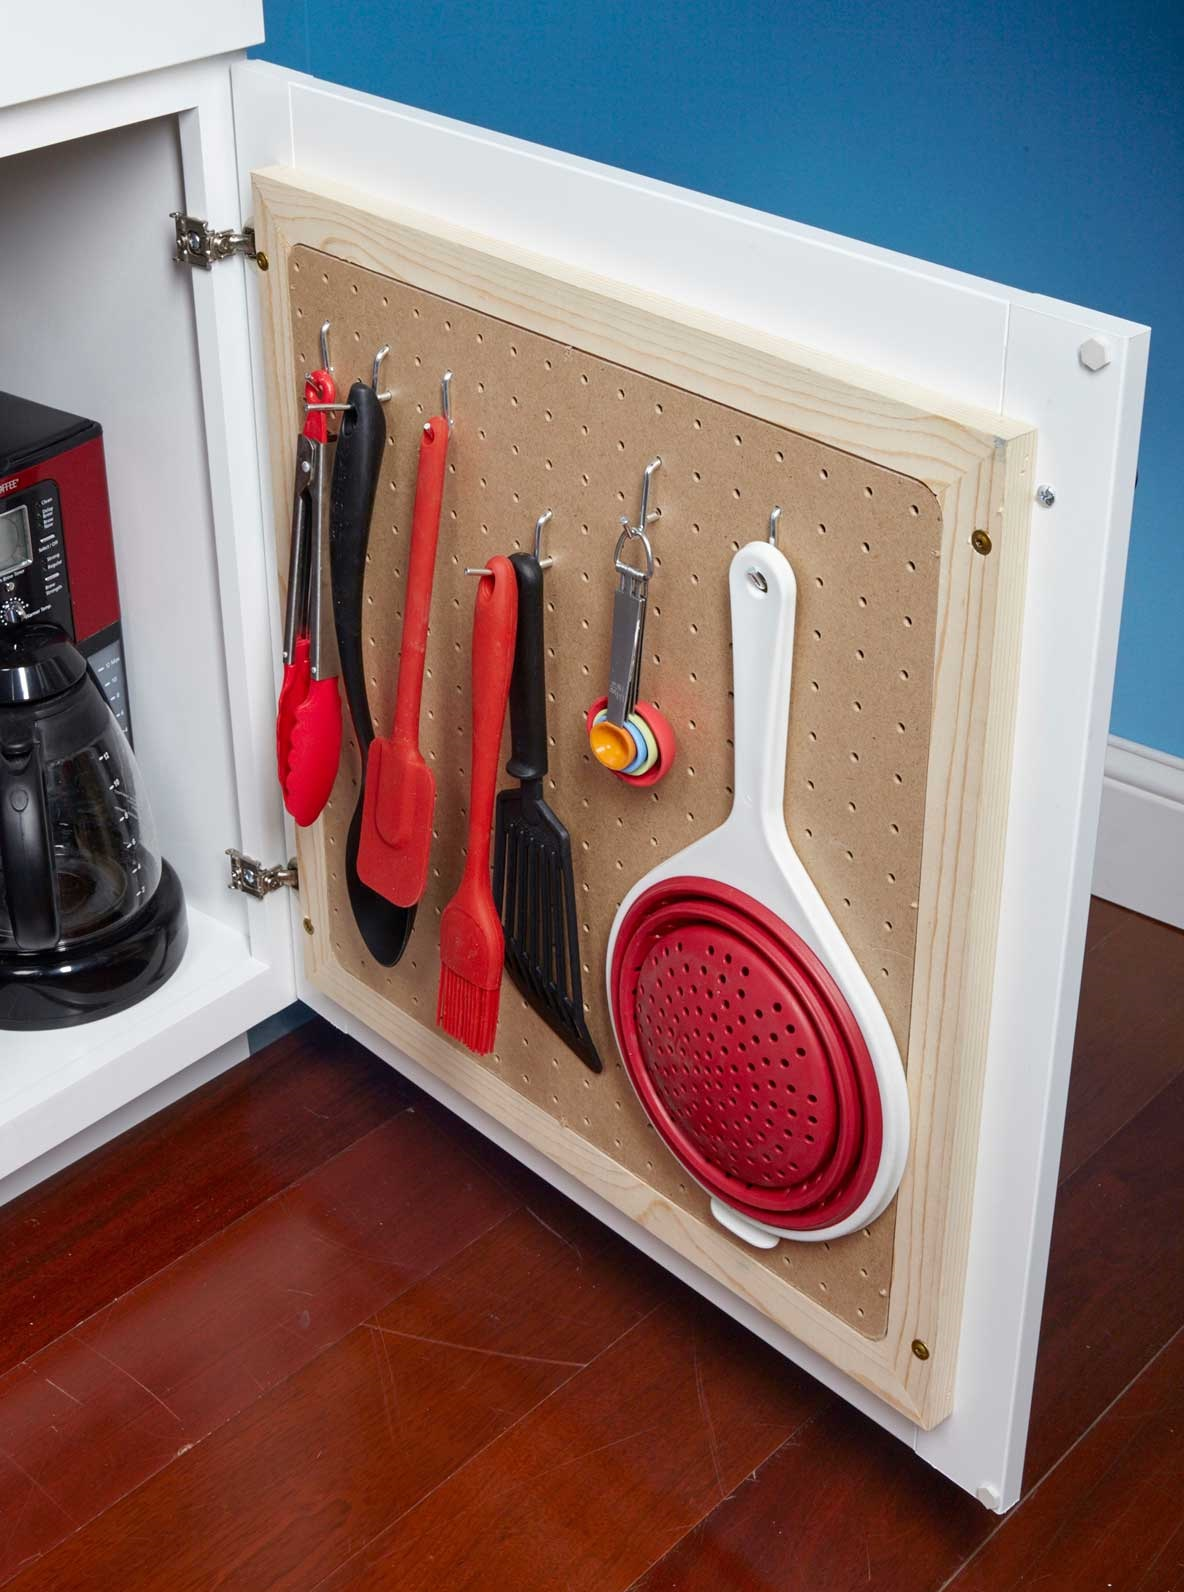 10 Cool Ways to Organize With a Pegboard9